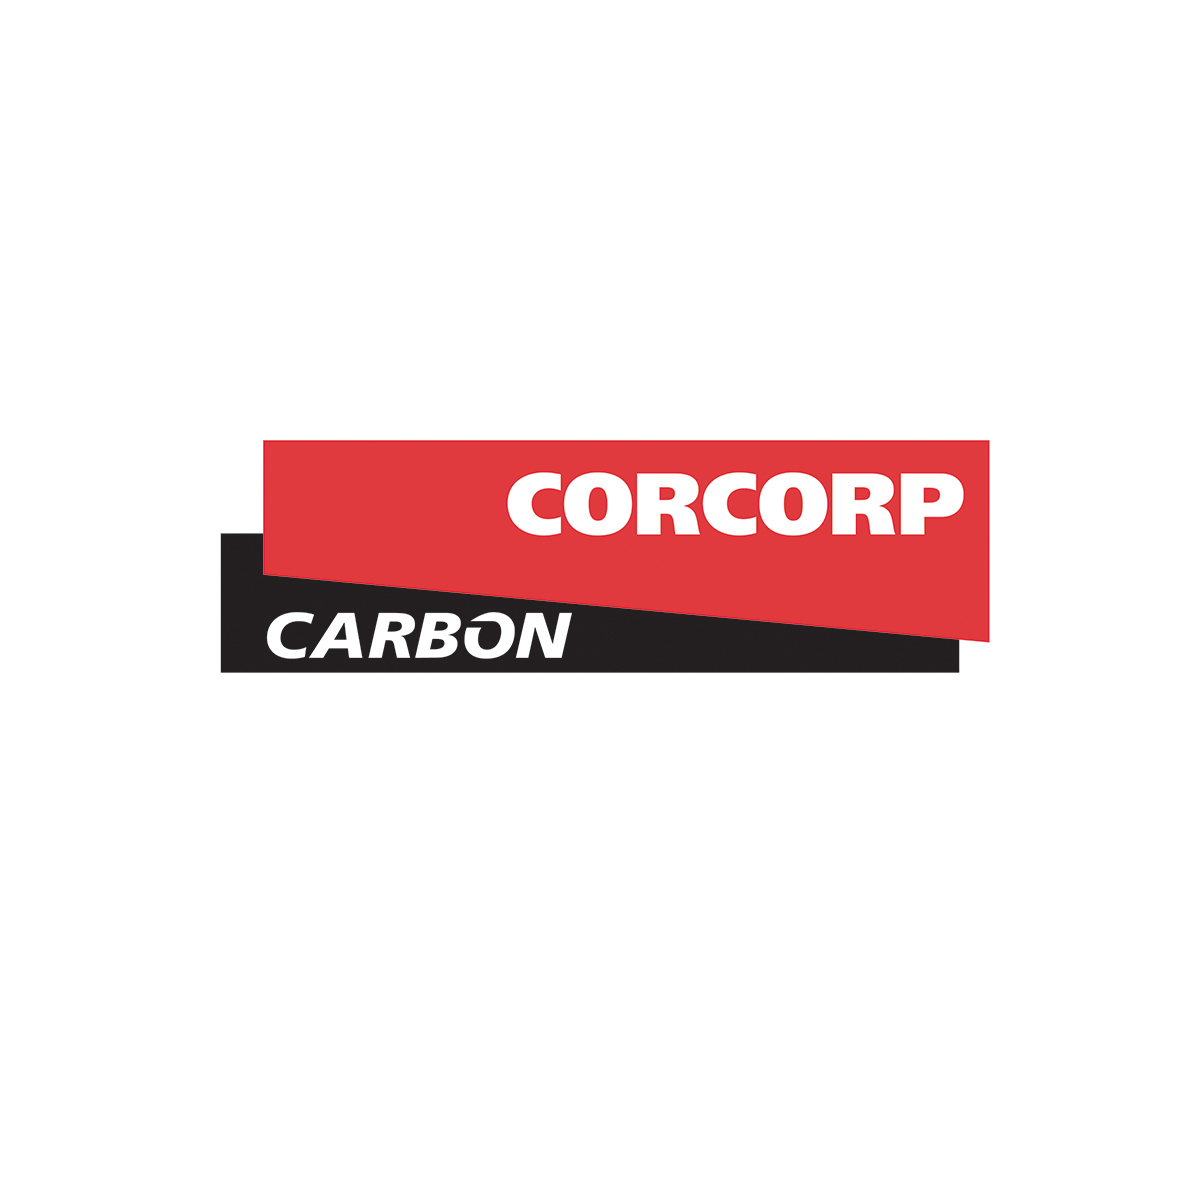 Corcorp Carbon